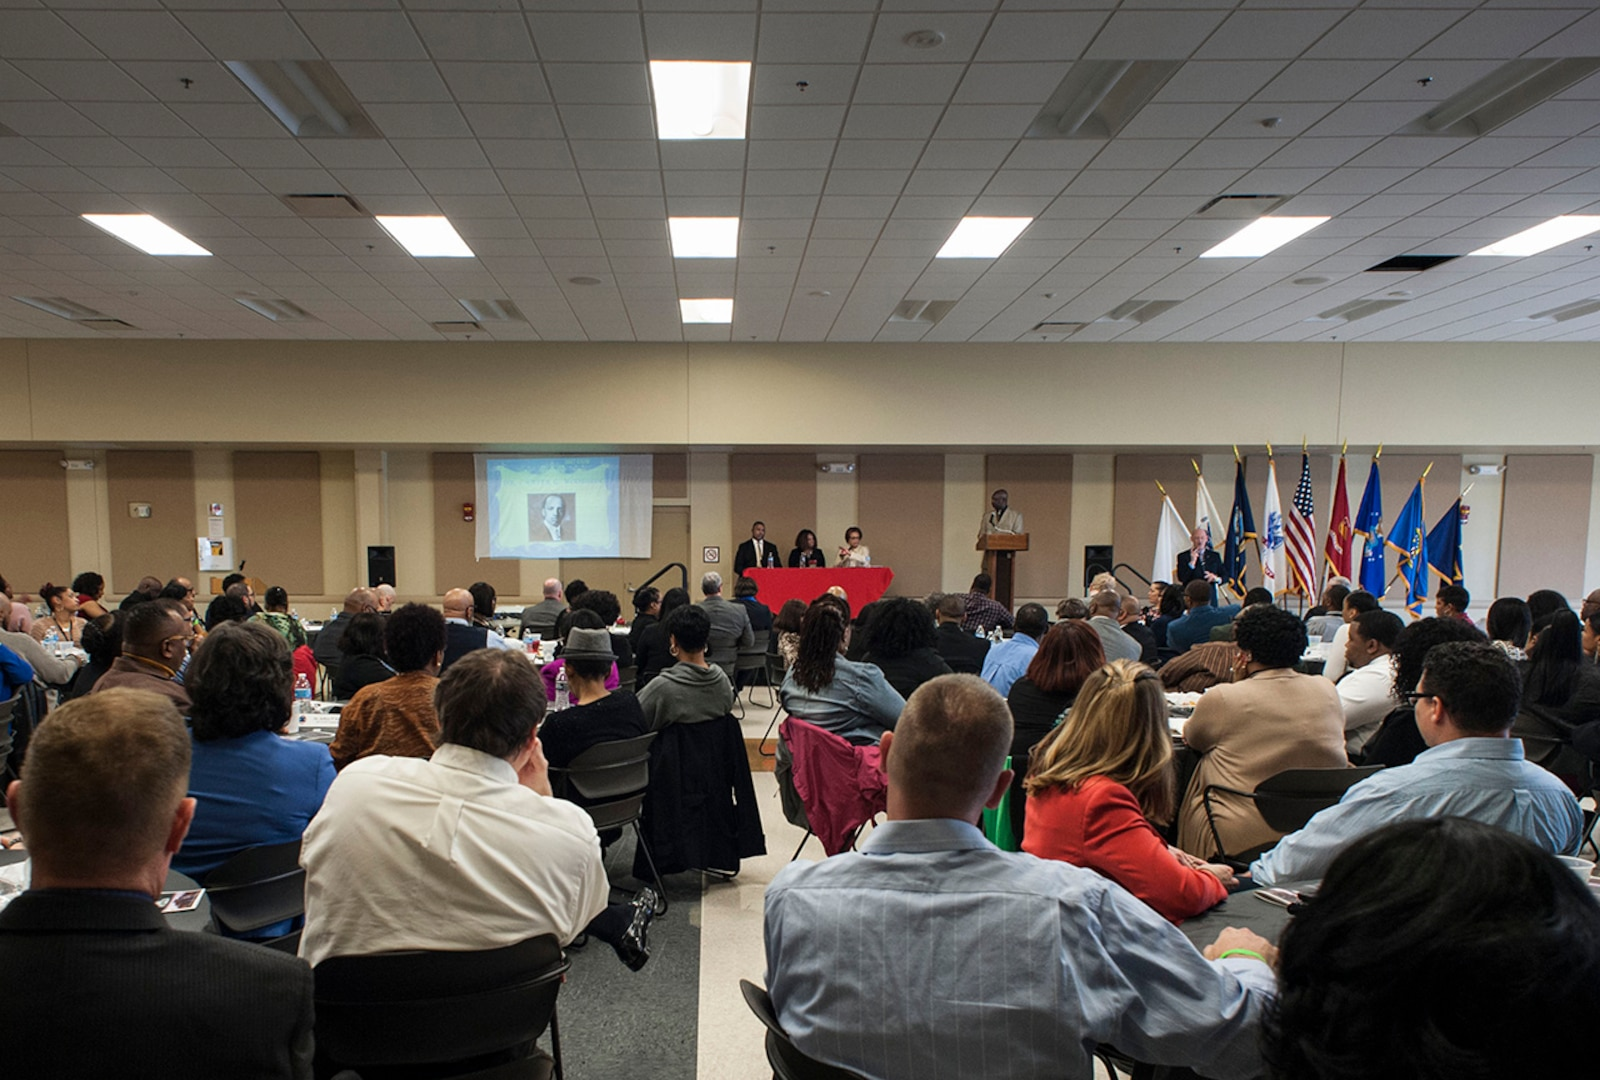 """The Defense Federal Community hosted a panel discussion Feb. 22 at the Armed Forces Reserve Center at Defense Supply Center Columbus as part of the installation's recognition of African American Heritage/Black History Month. The panel brought together community leaders to discuss the """"Crisis in Black Education."""""""